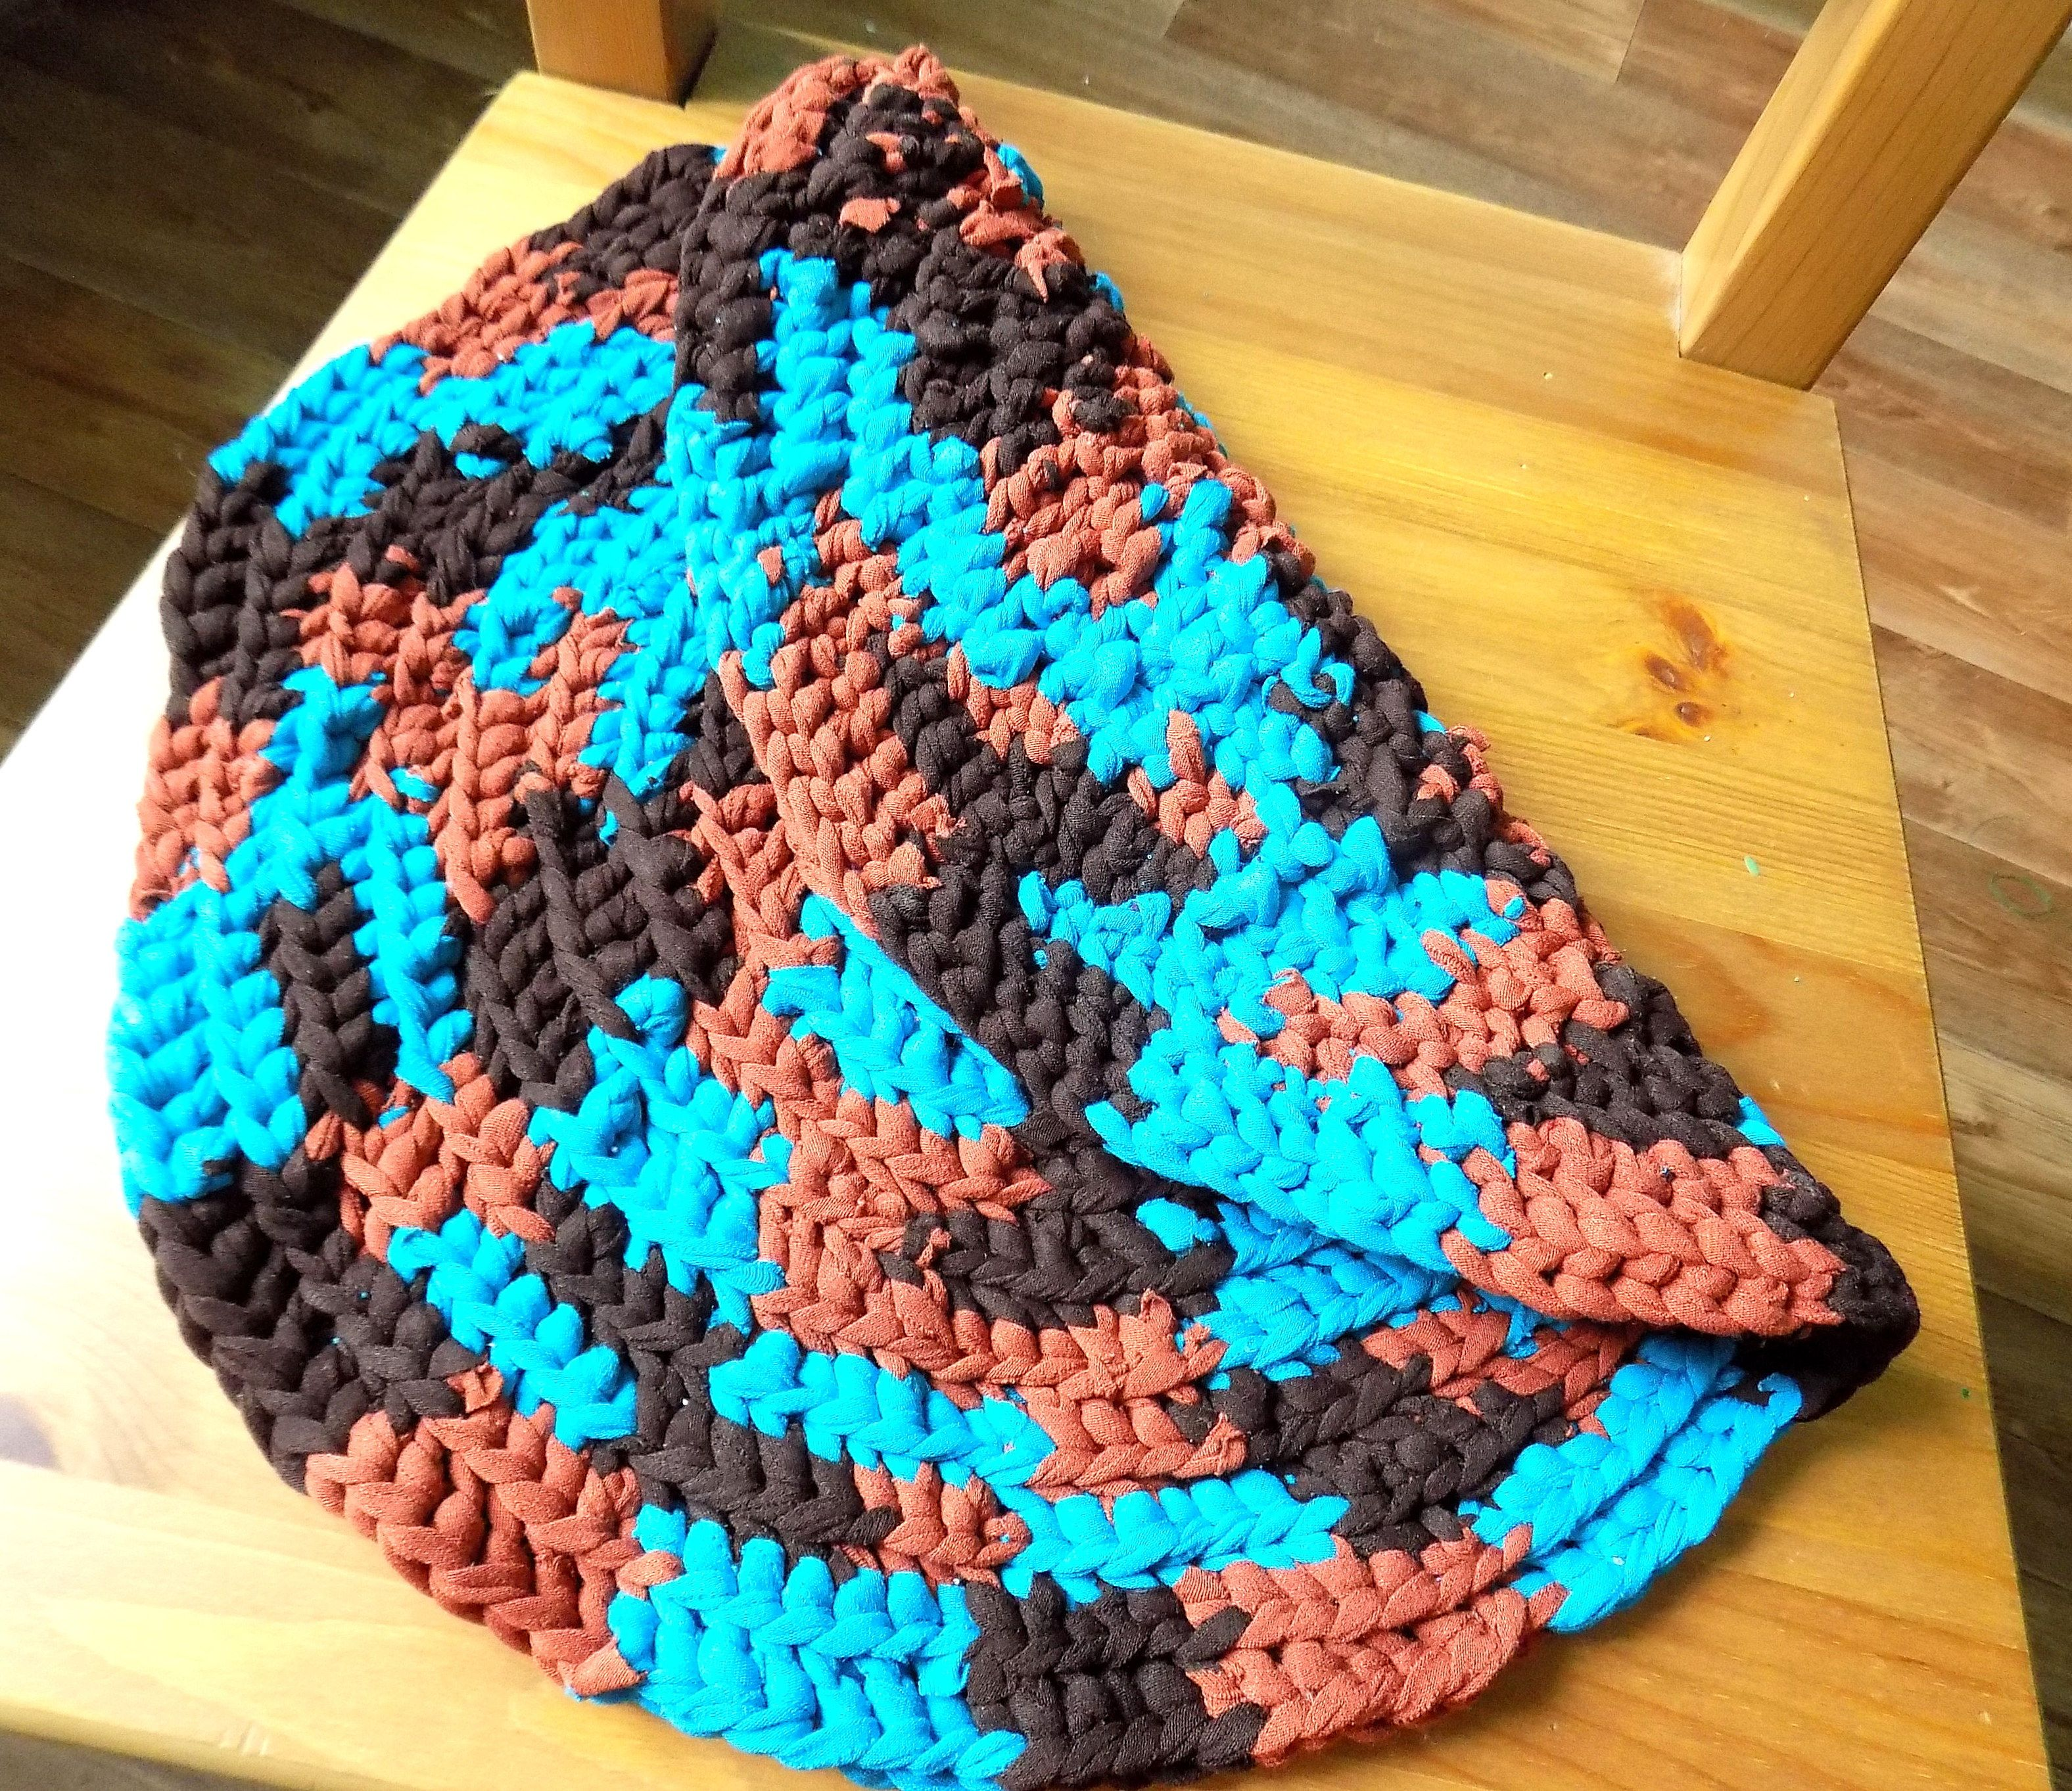 Round Placemat Blue Crochet Seat Cover Brown Crochet Handmade Mat, Play Mat,  Small Rag Rug, Blue Brown Small Round Crochet Cat Cat Mat, Chair Seat Pad,  ...